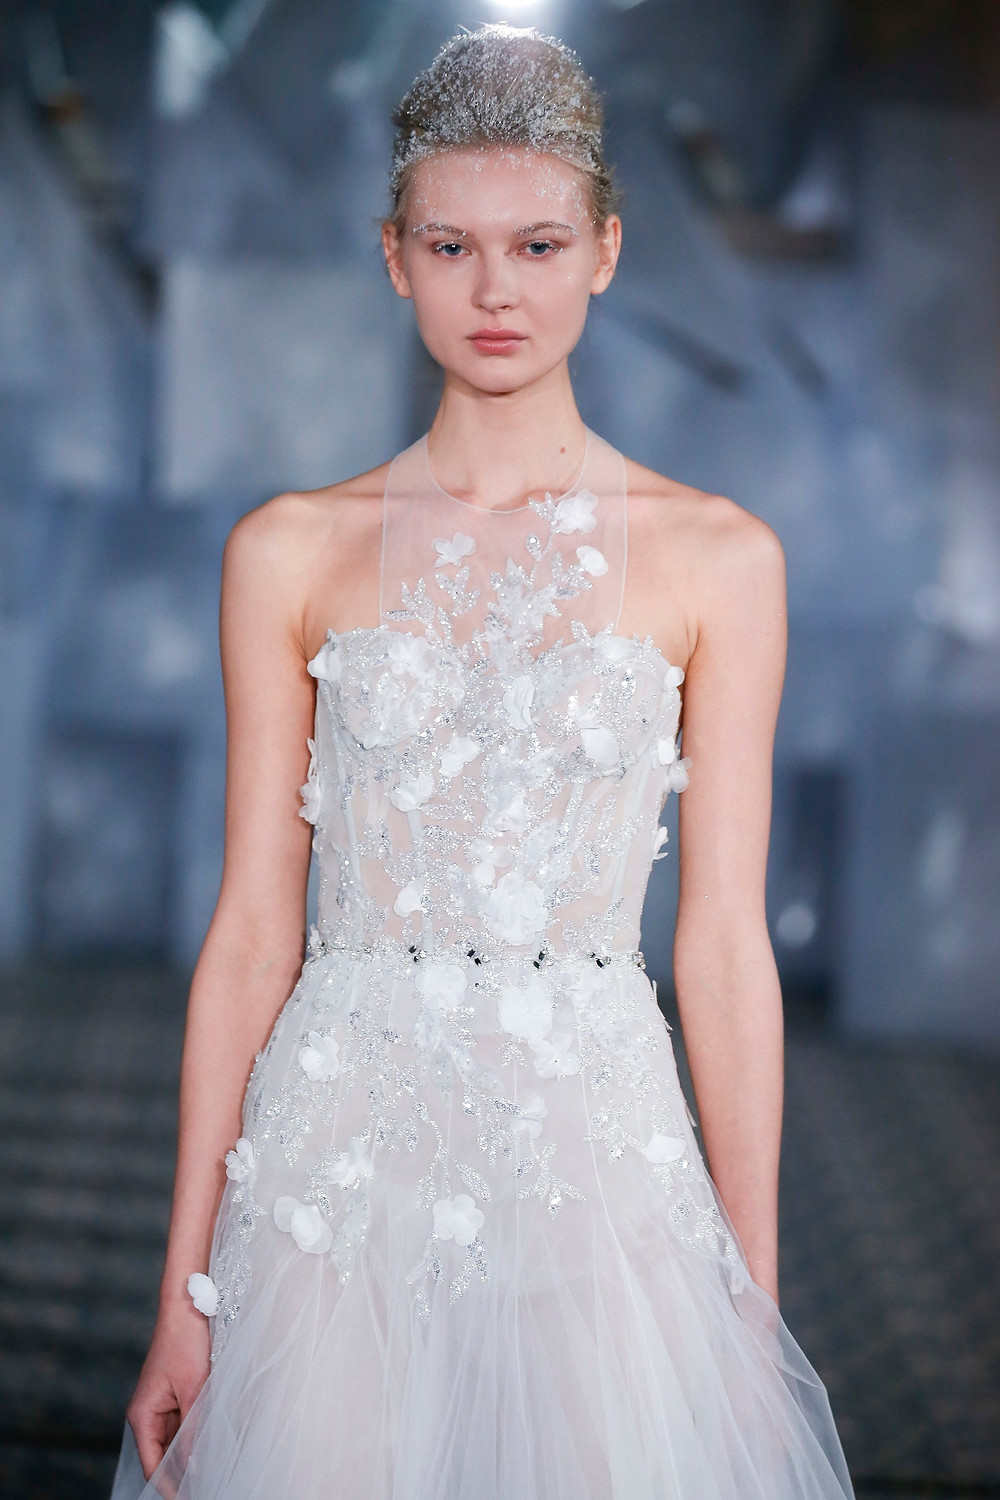 Weddinspired | 35+ Stylish Halterneck Wedding Dresses | Mira Zwillinger - From the Queen of Ice S/S 2019 collection